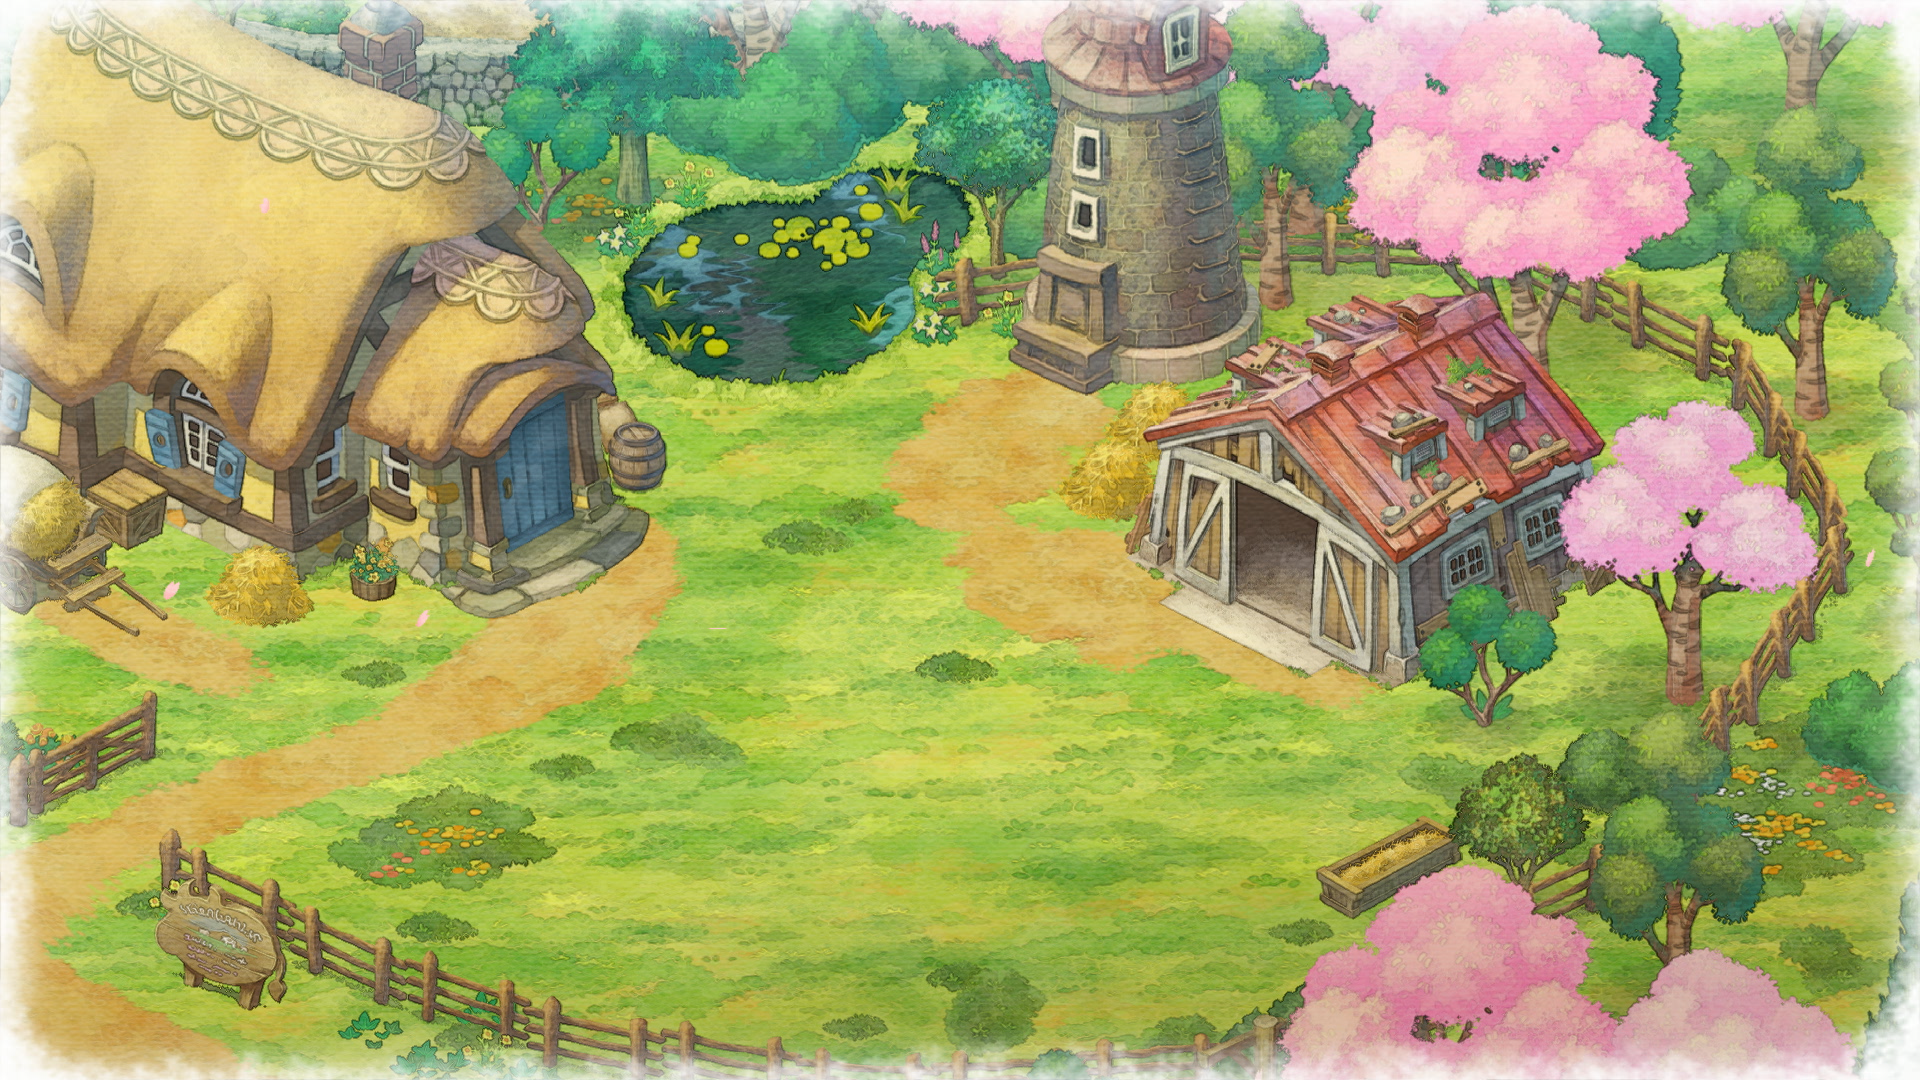 Gaea_town_1556028532.png